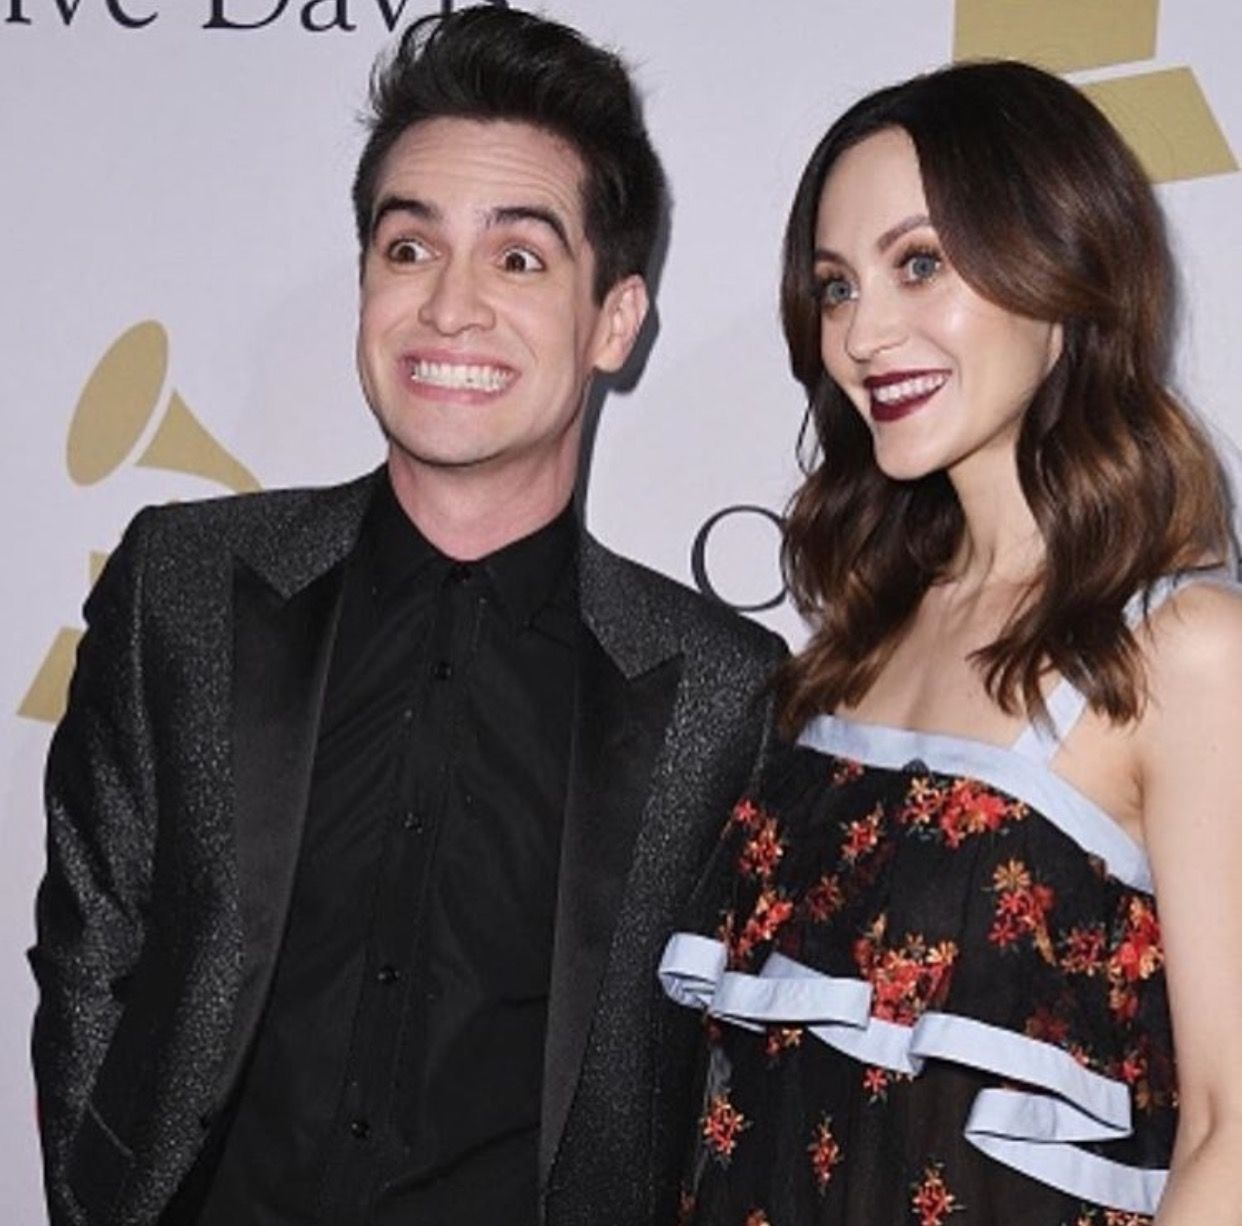 Is brendon urie still dating sarah